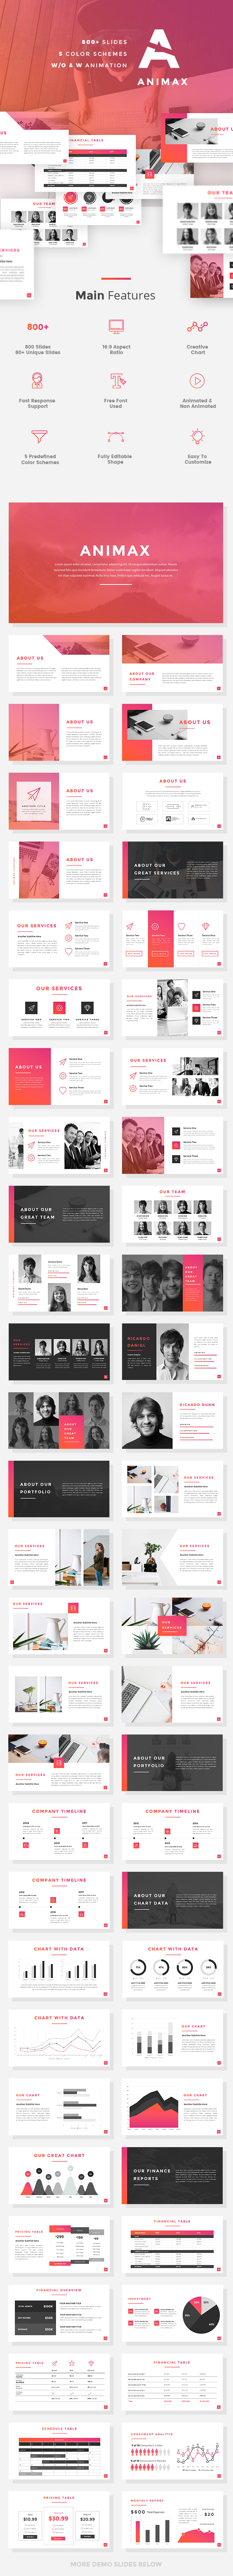 Animax - Finance and Marketing PowerPoint Template - Finance PowerPoint Templates